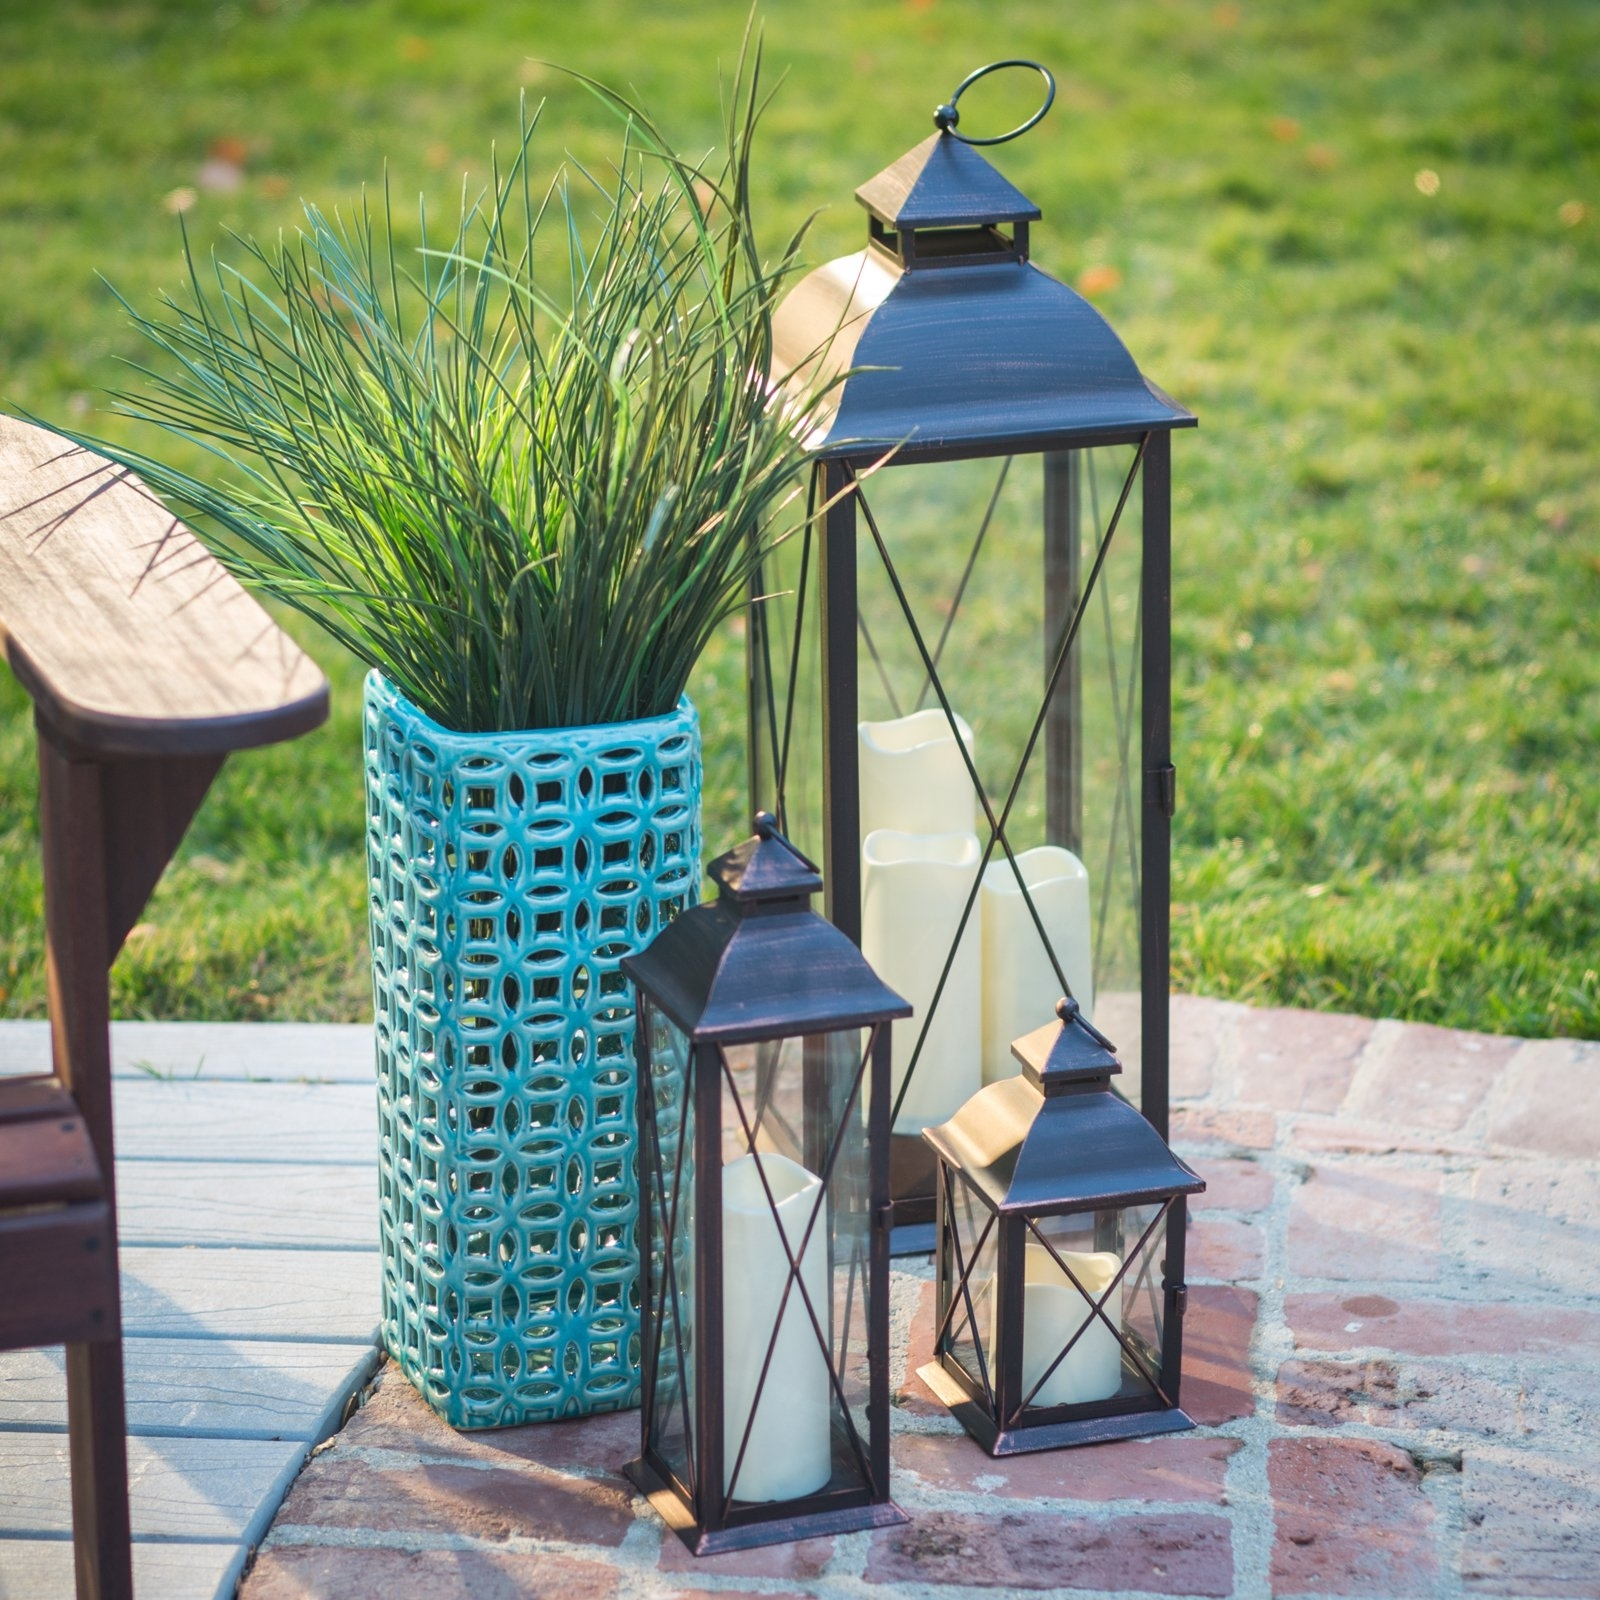 Set Of 3 Outdoor Lanterns Pertaining To Recent Smart Design Metal Lanterns With Led Candles – Set Of 3 – Walmart (View 5 of 20)